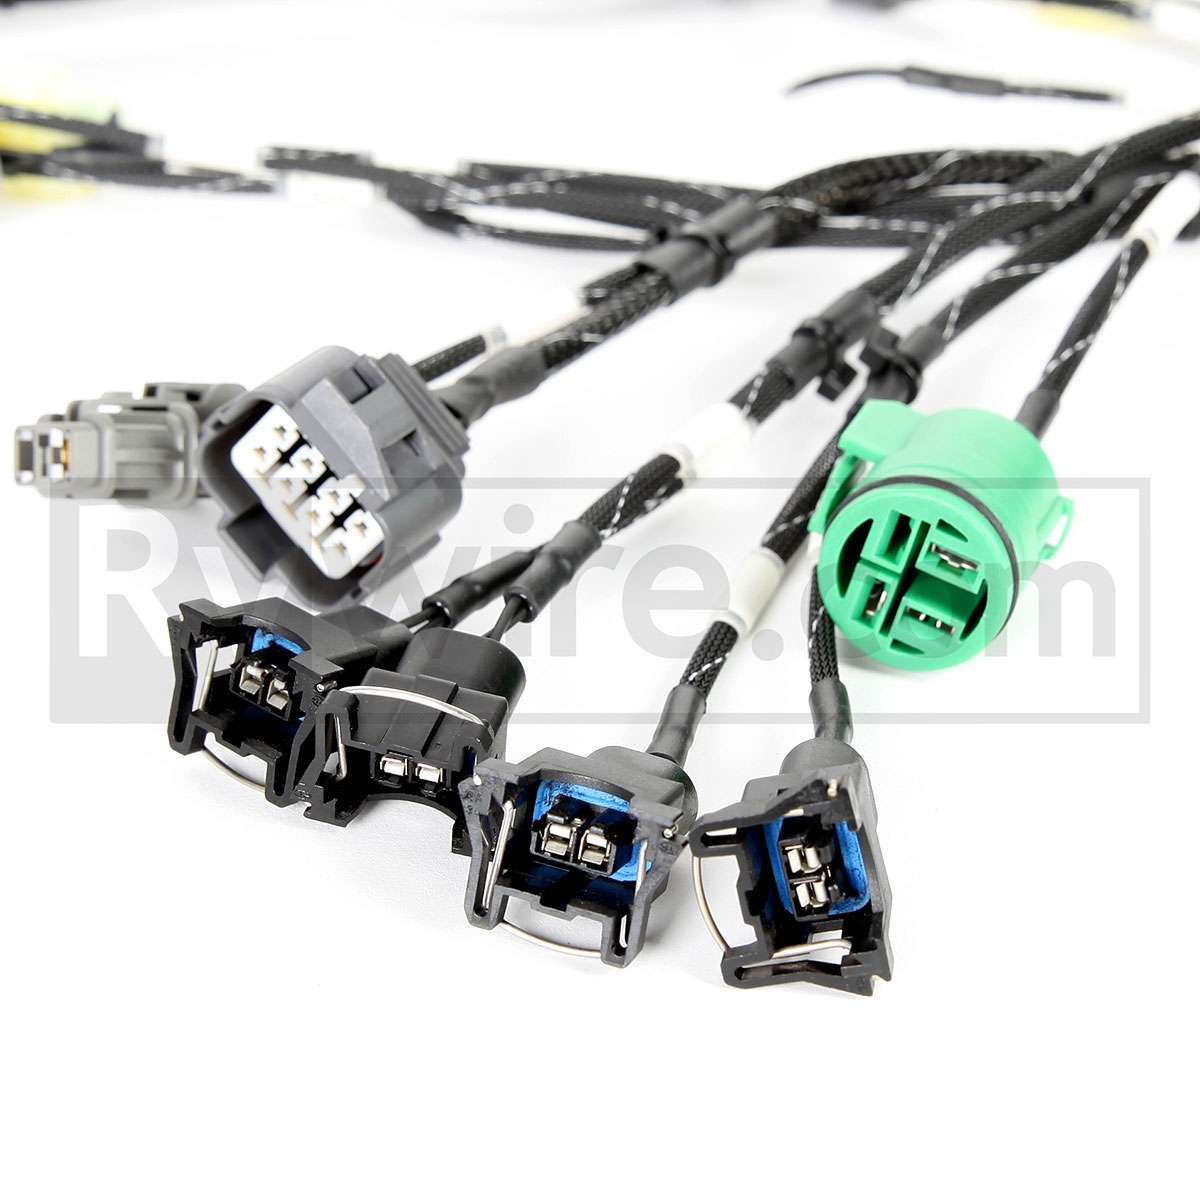 B1 Base 4?1403534211 rywire com budget d & b series tucked engine harness 99-00 civic si wiring harness at nearapp.co